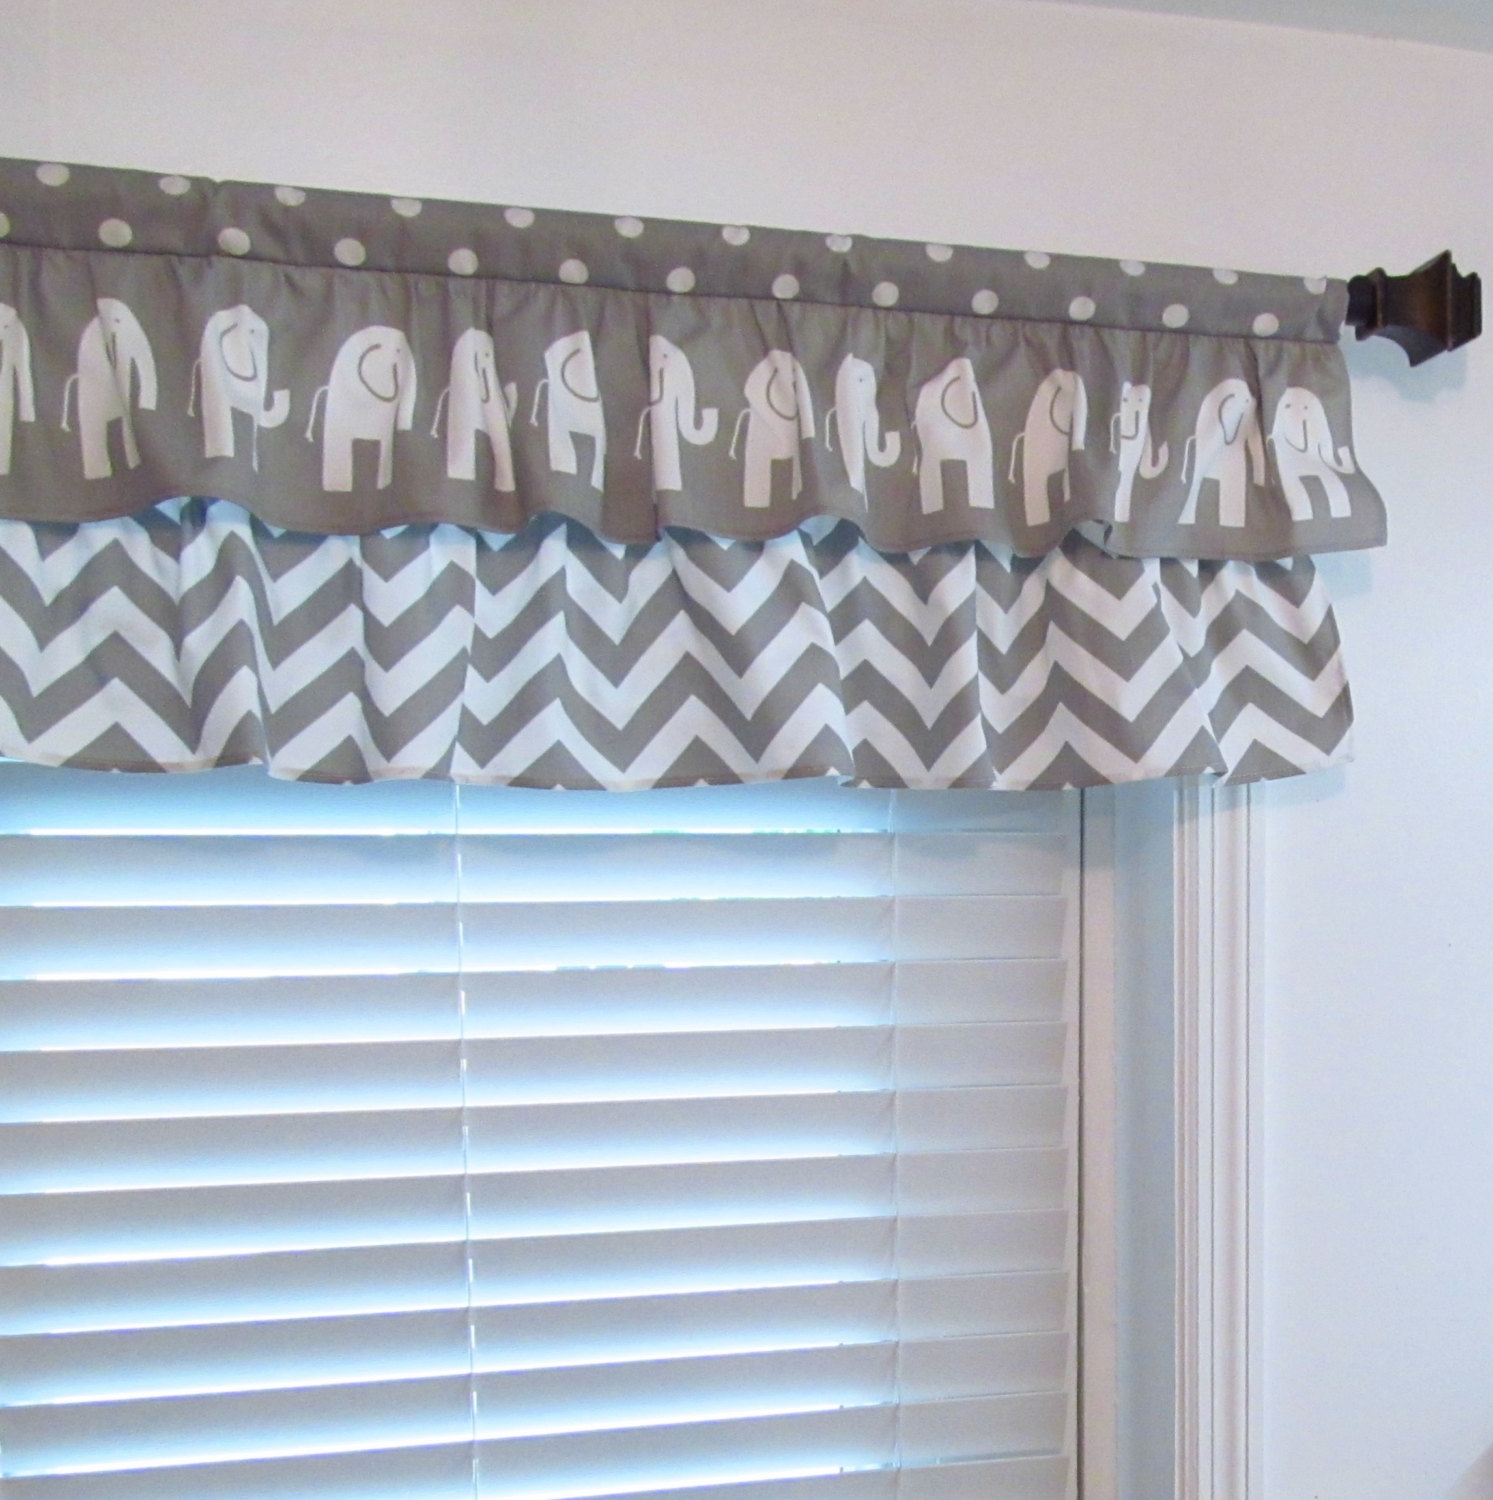 Nursery Decor Two Tiered Curtain Elephant Chevron Polka Dot With Regard To Navy And White Polka Dot Curtains (Image 18 of 25)